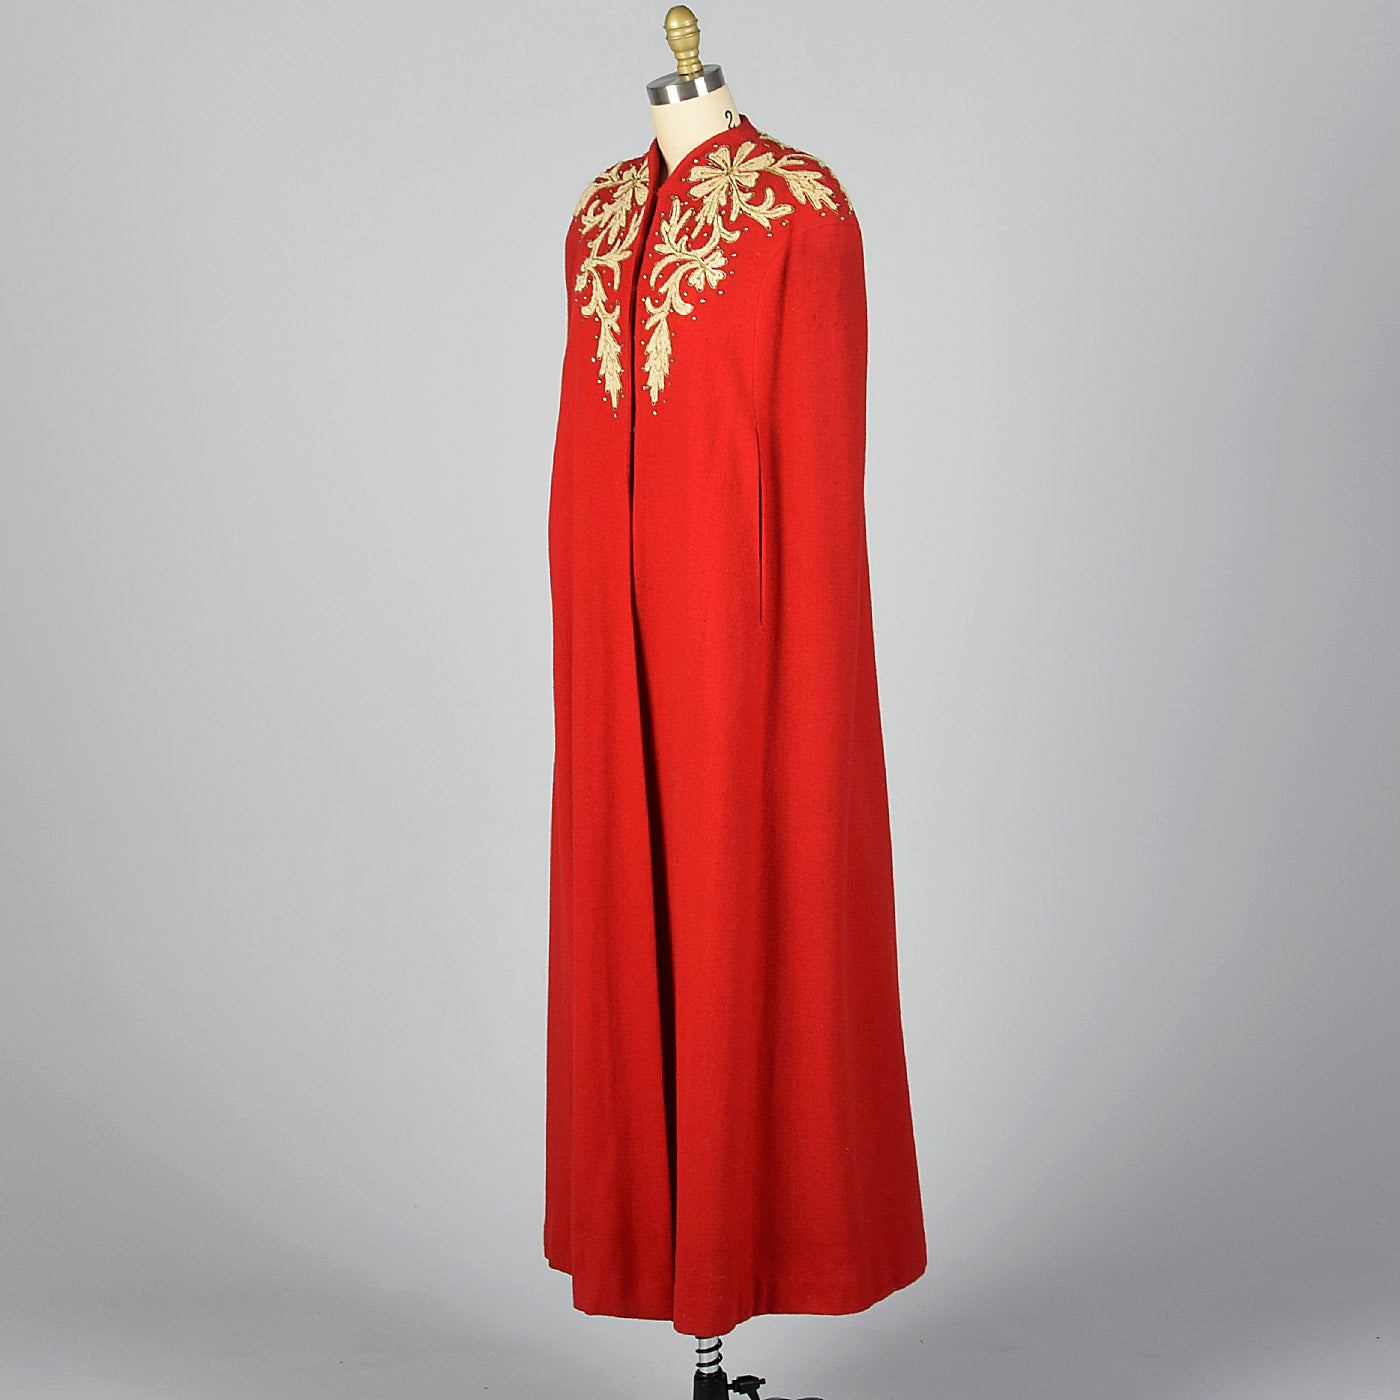 1940s Glamorous Red Cape